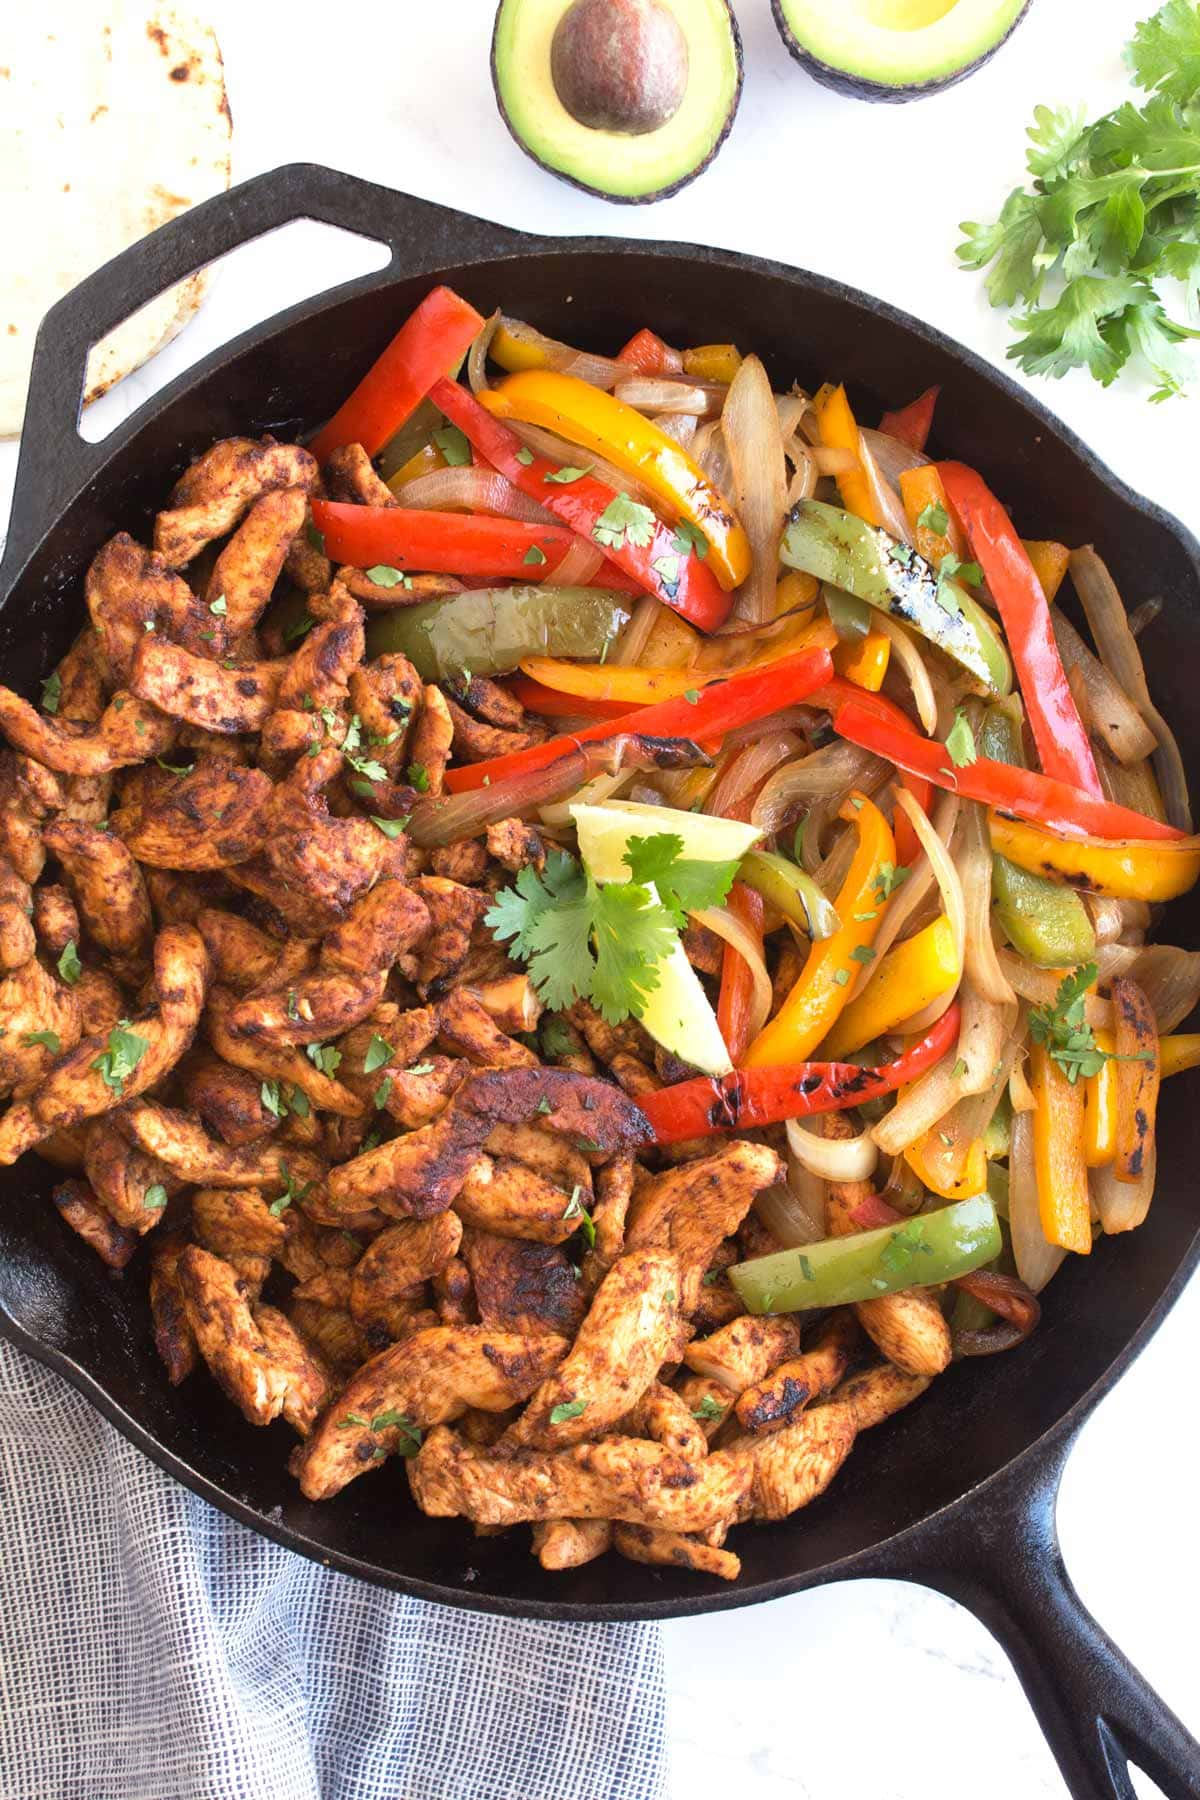 Whole cast iron skillet full of sizzling chicken fajita meat and vegetables.